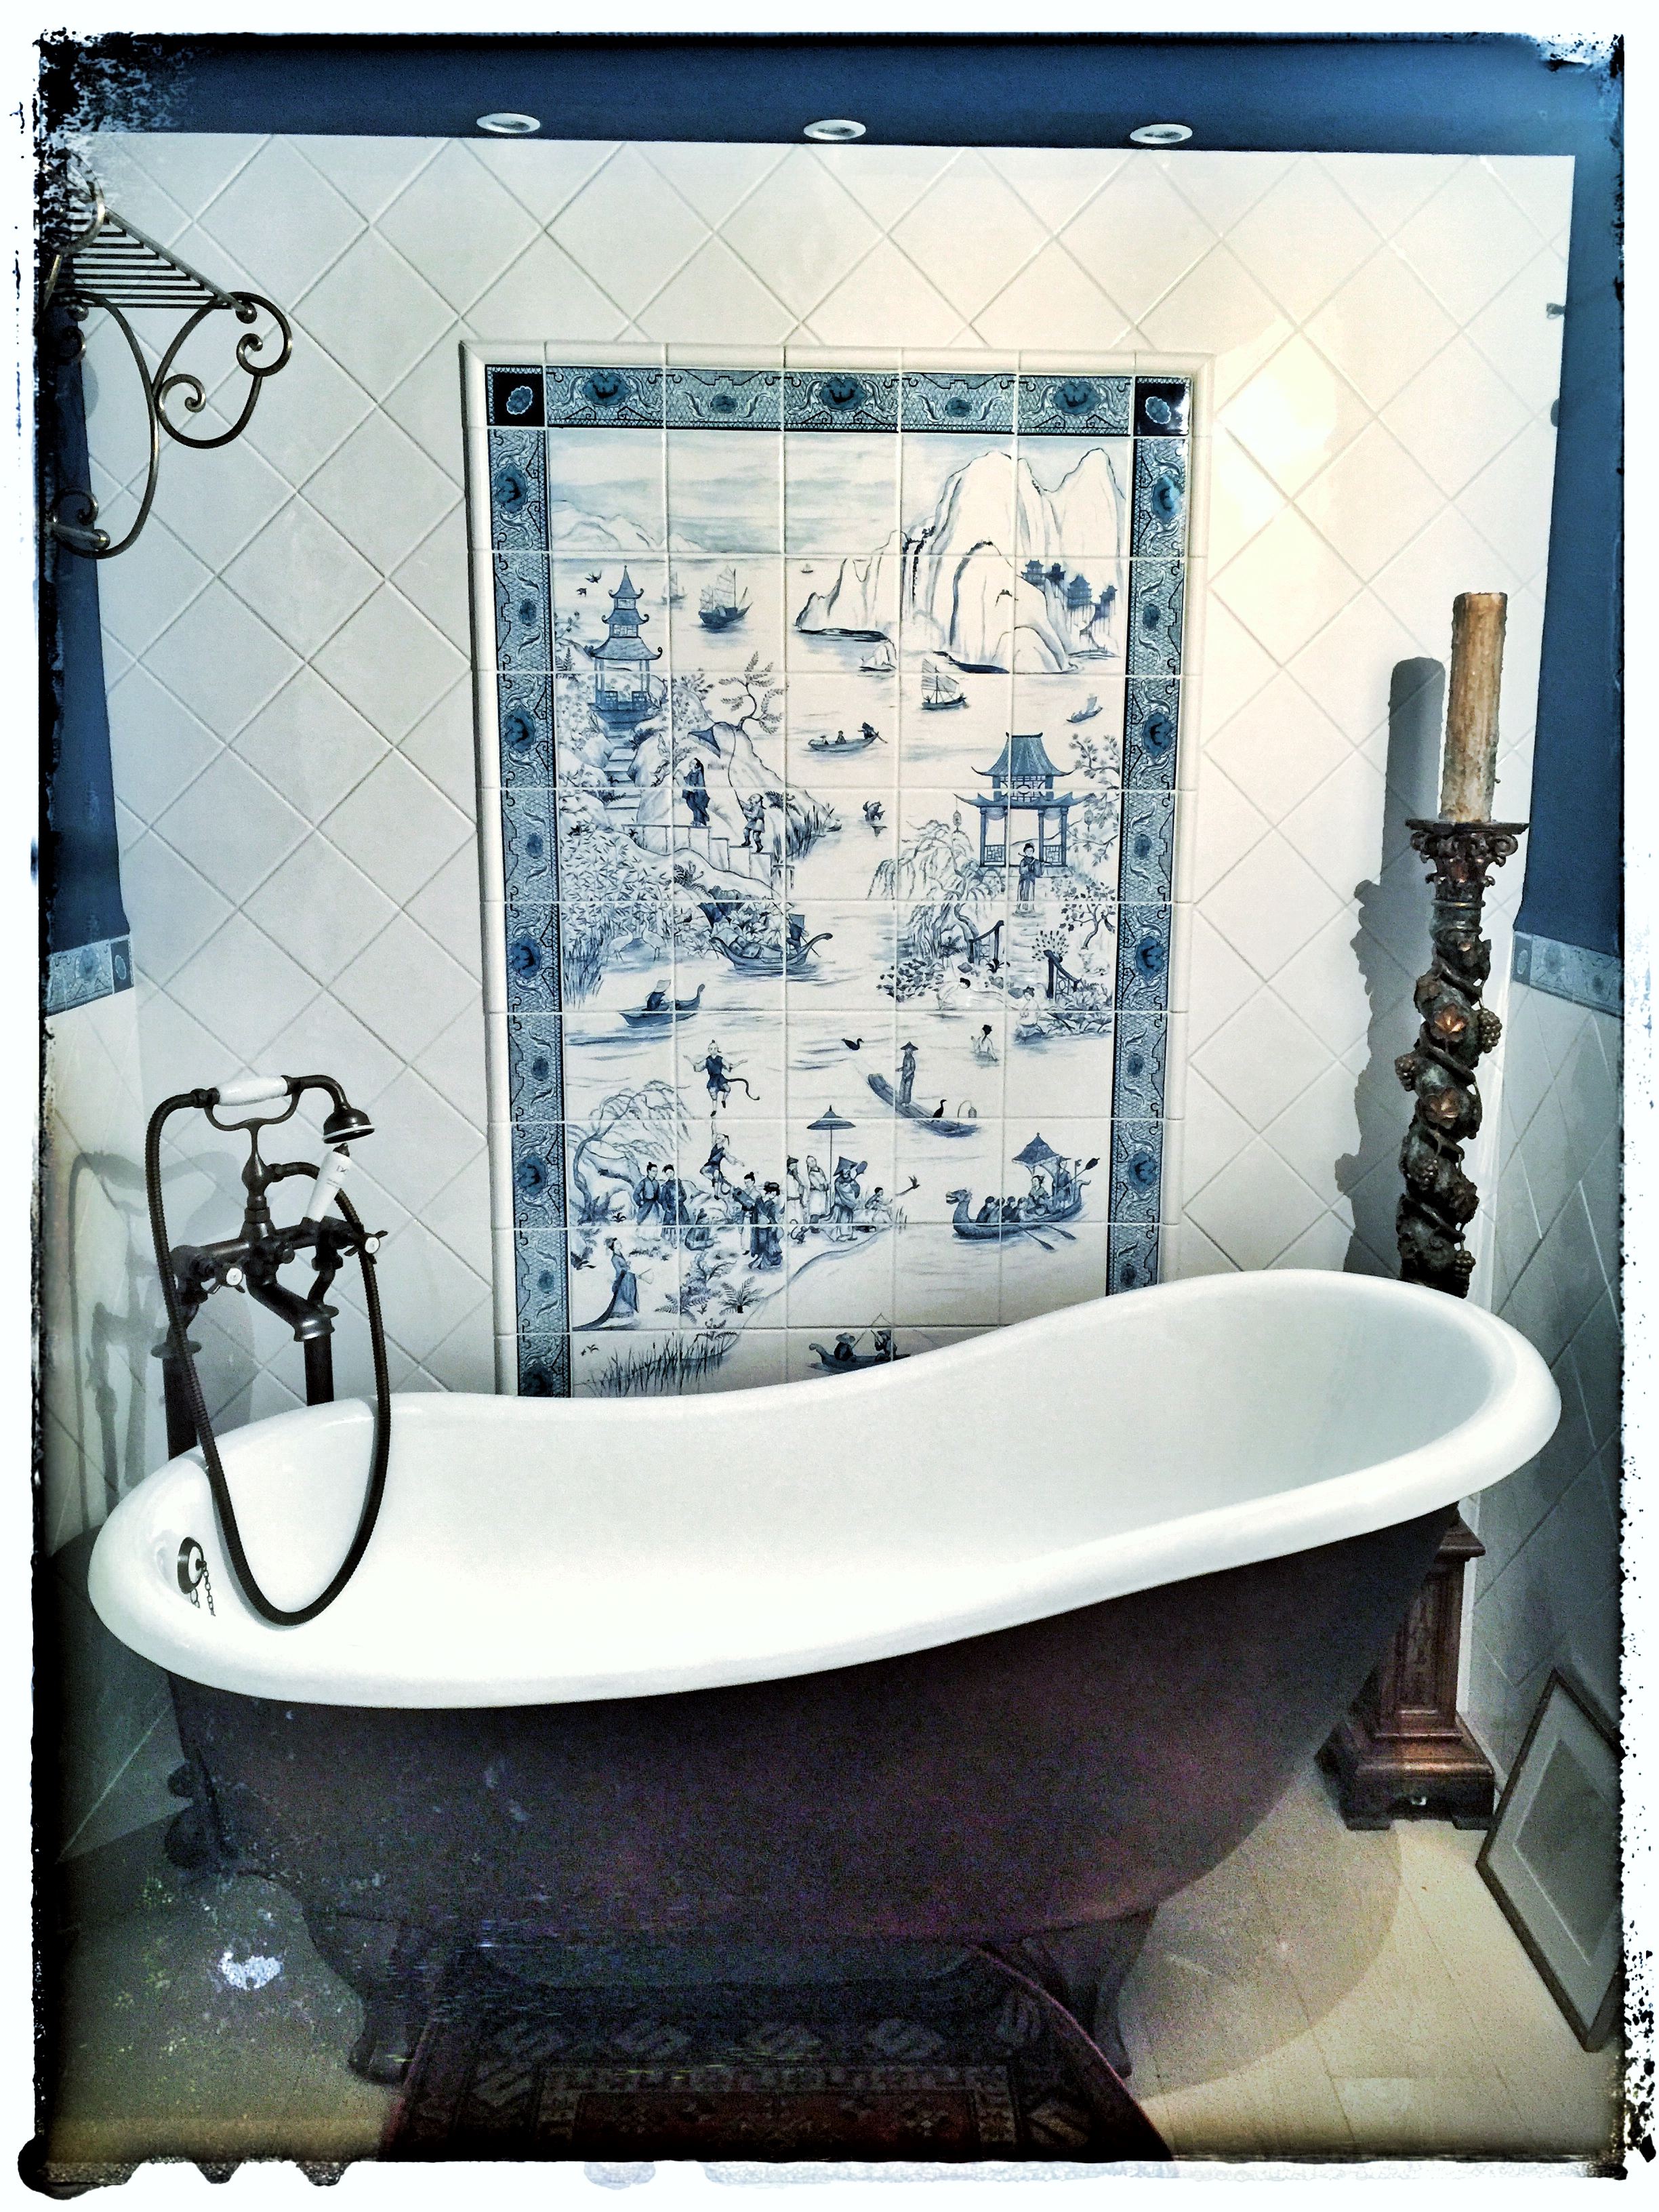 COURTESAN CHINOISERIE TILES - Frederick Wimsett - murals and artistic design - other projects